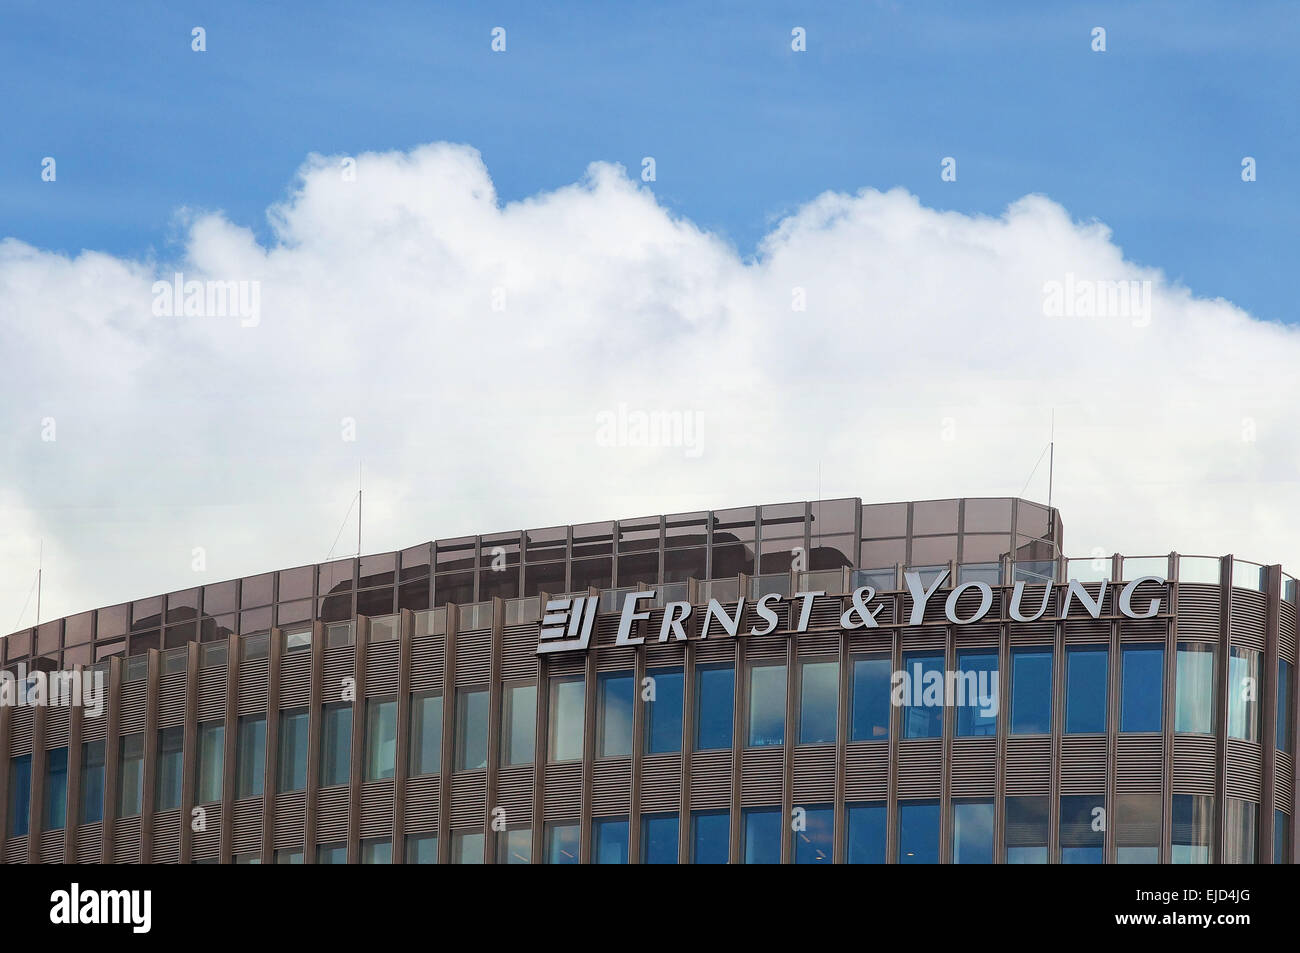 Ernst & Young Branch Berlin Germany - Stock Image